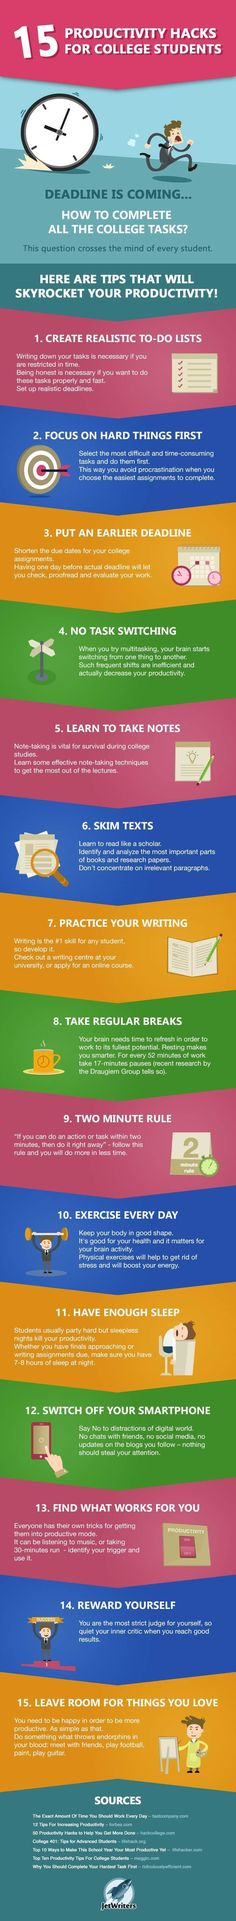 15 Productivity Hacks for College Students - info graphic